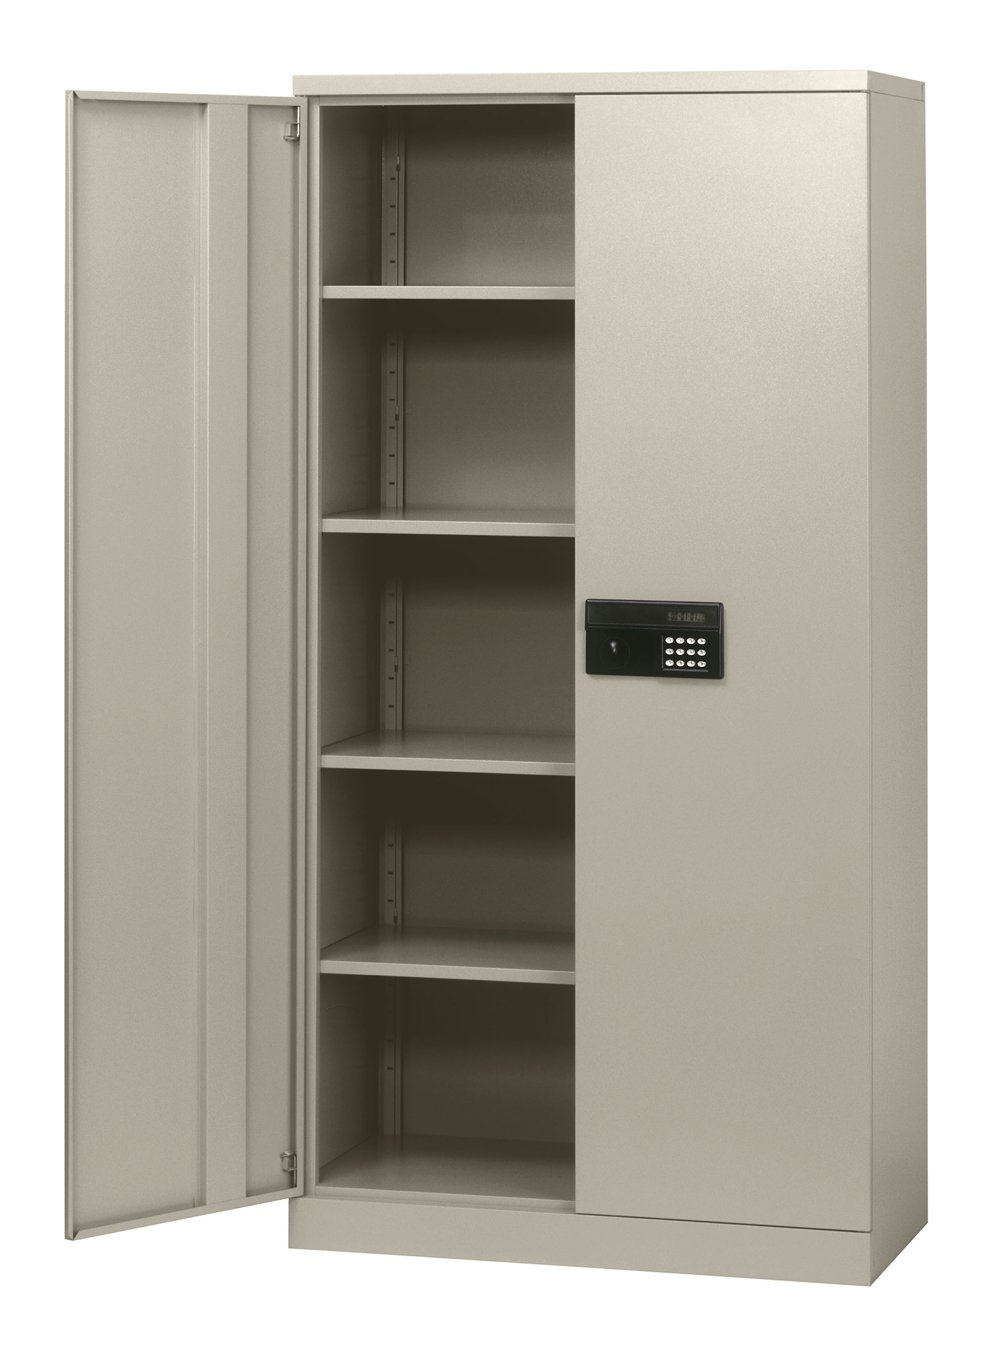 Storage Cabinets With Locks